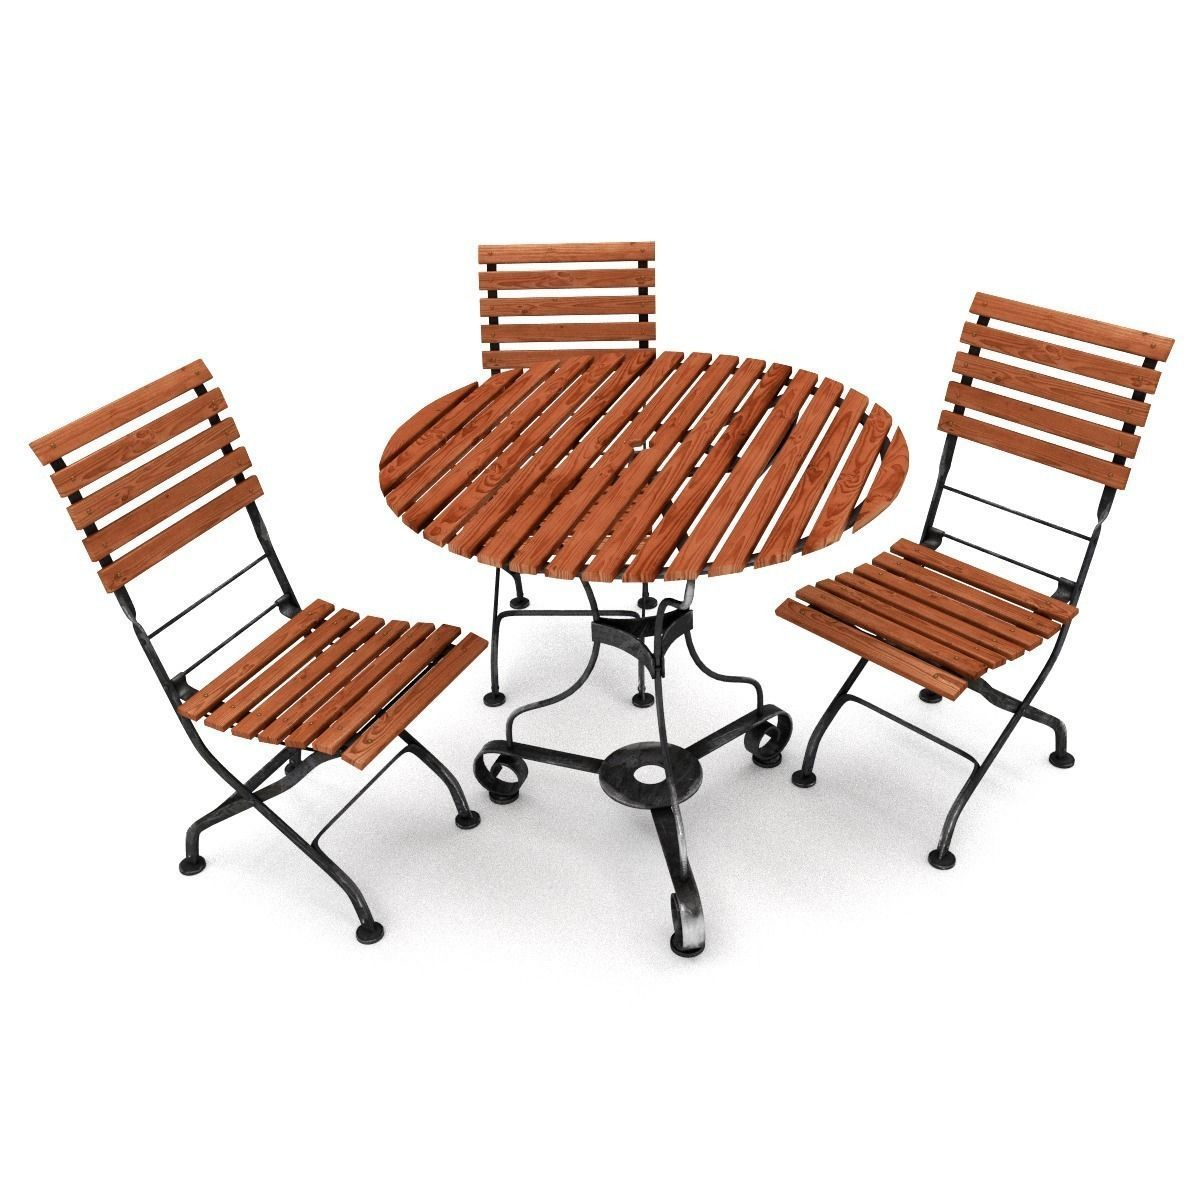 Charmant Garden Furniture Set 3d Model Obj Fbx Blend 1 ...